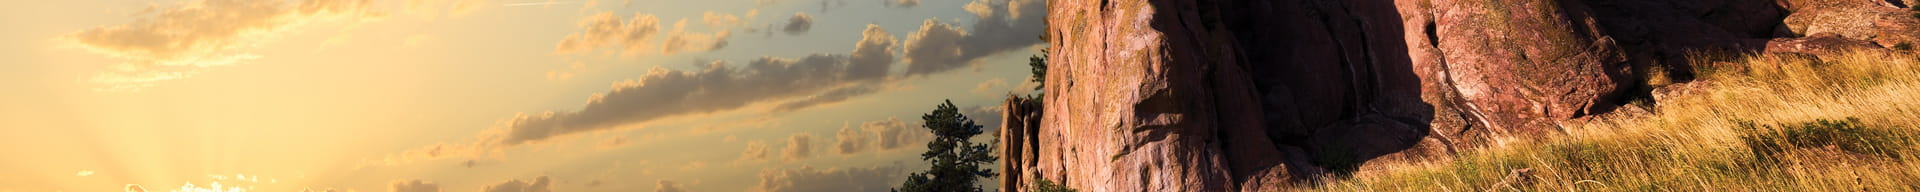 sunrise-reflecting-on-Colorado-rock-formation